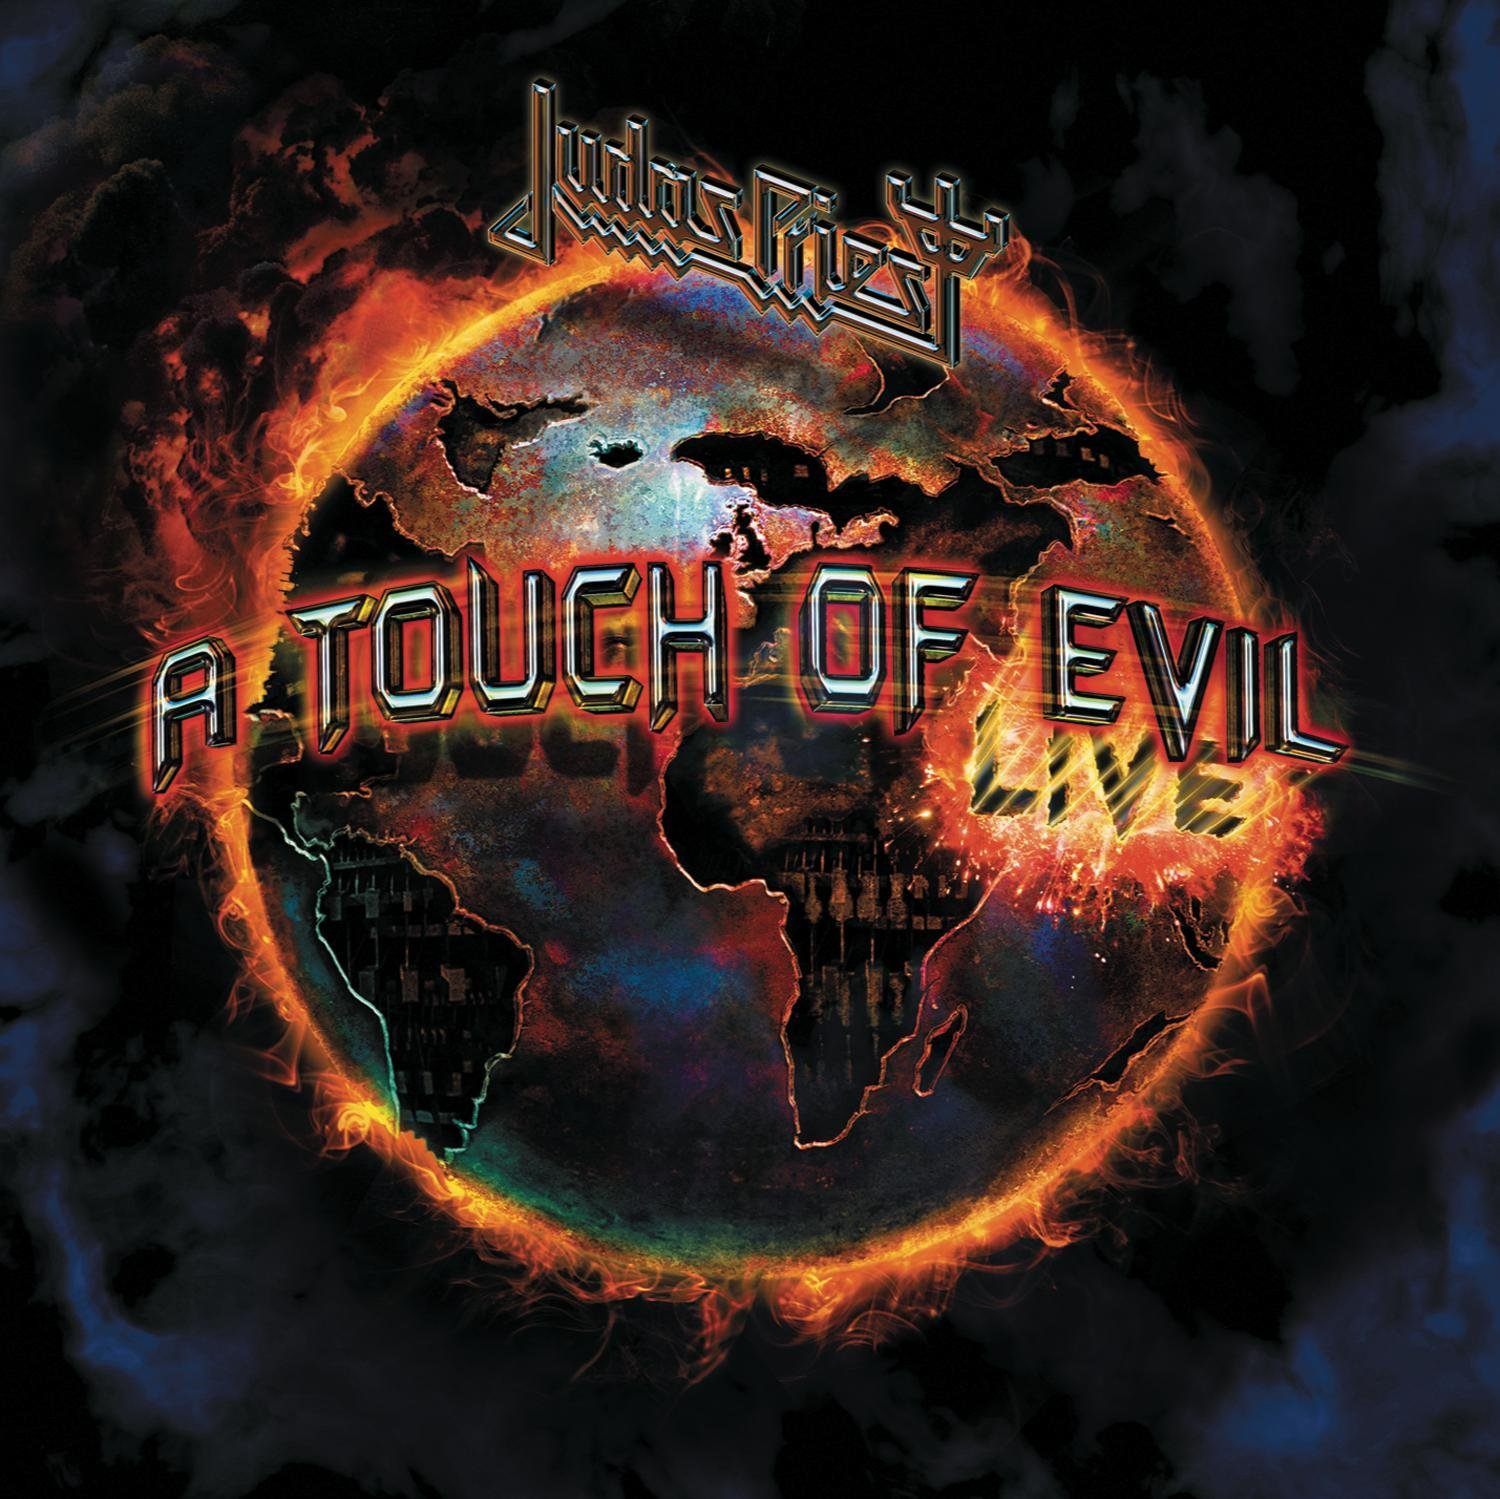 Judas Priest - A Touch Of Evil Live (2009) [FLAC] Download